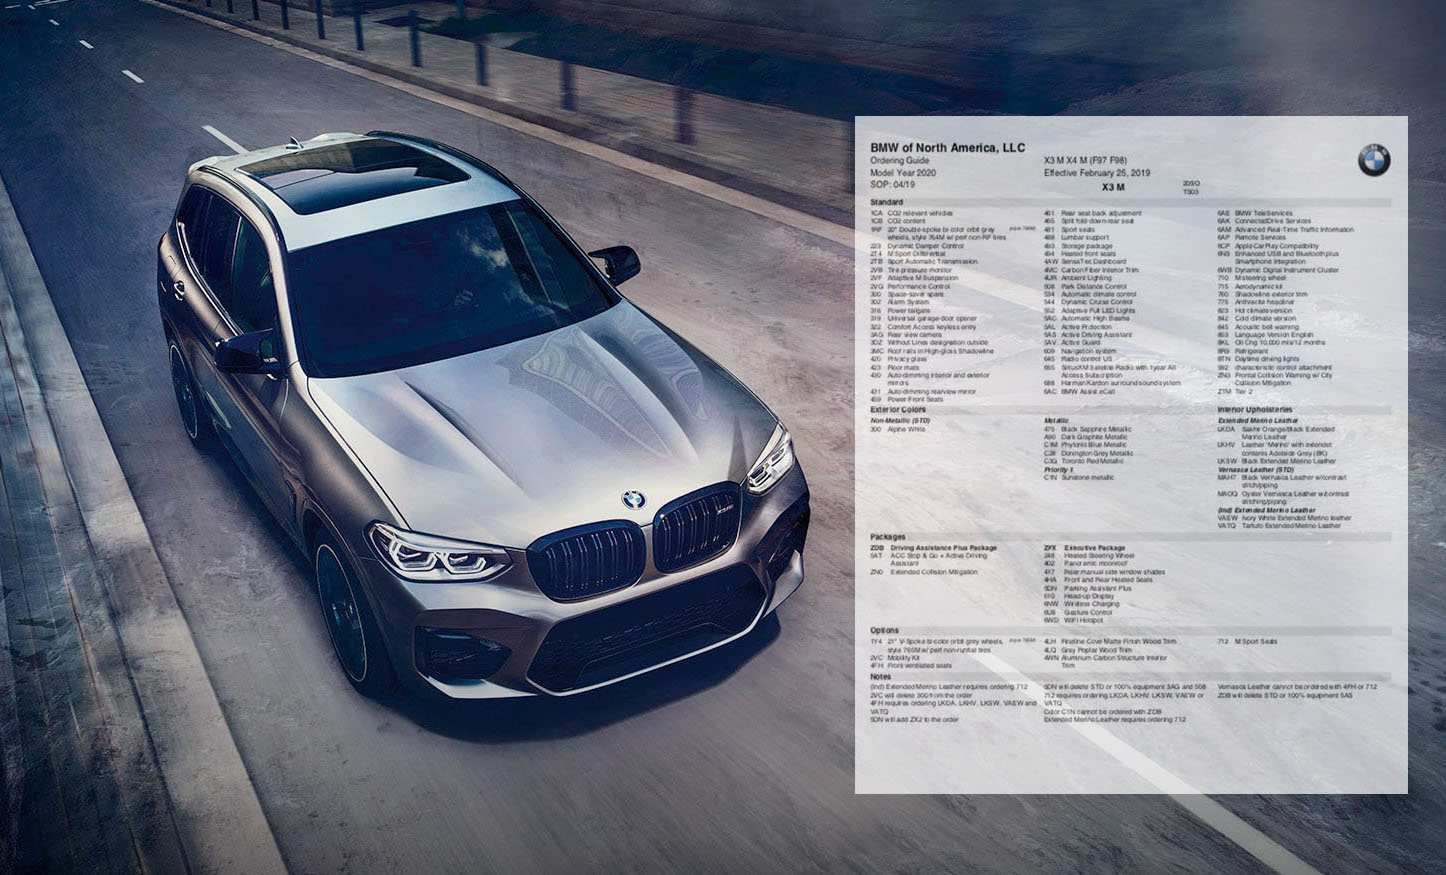 97 The 2020 BMW X3M Ordering Guide Prices for 2020 BMW X3M Ordering Guide